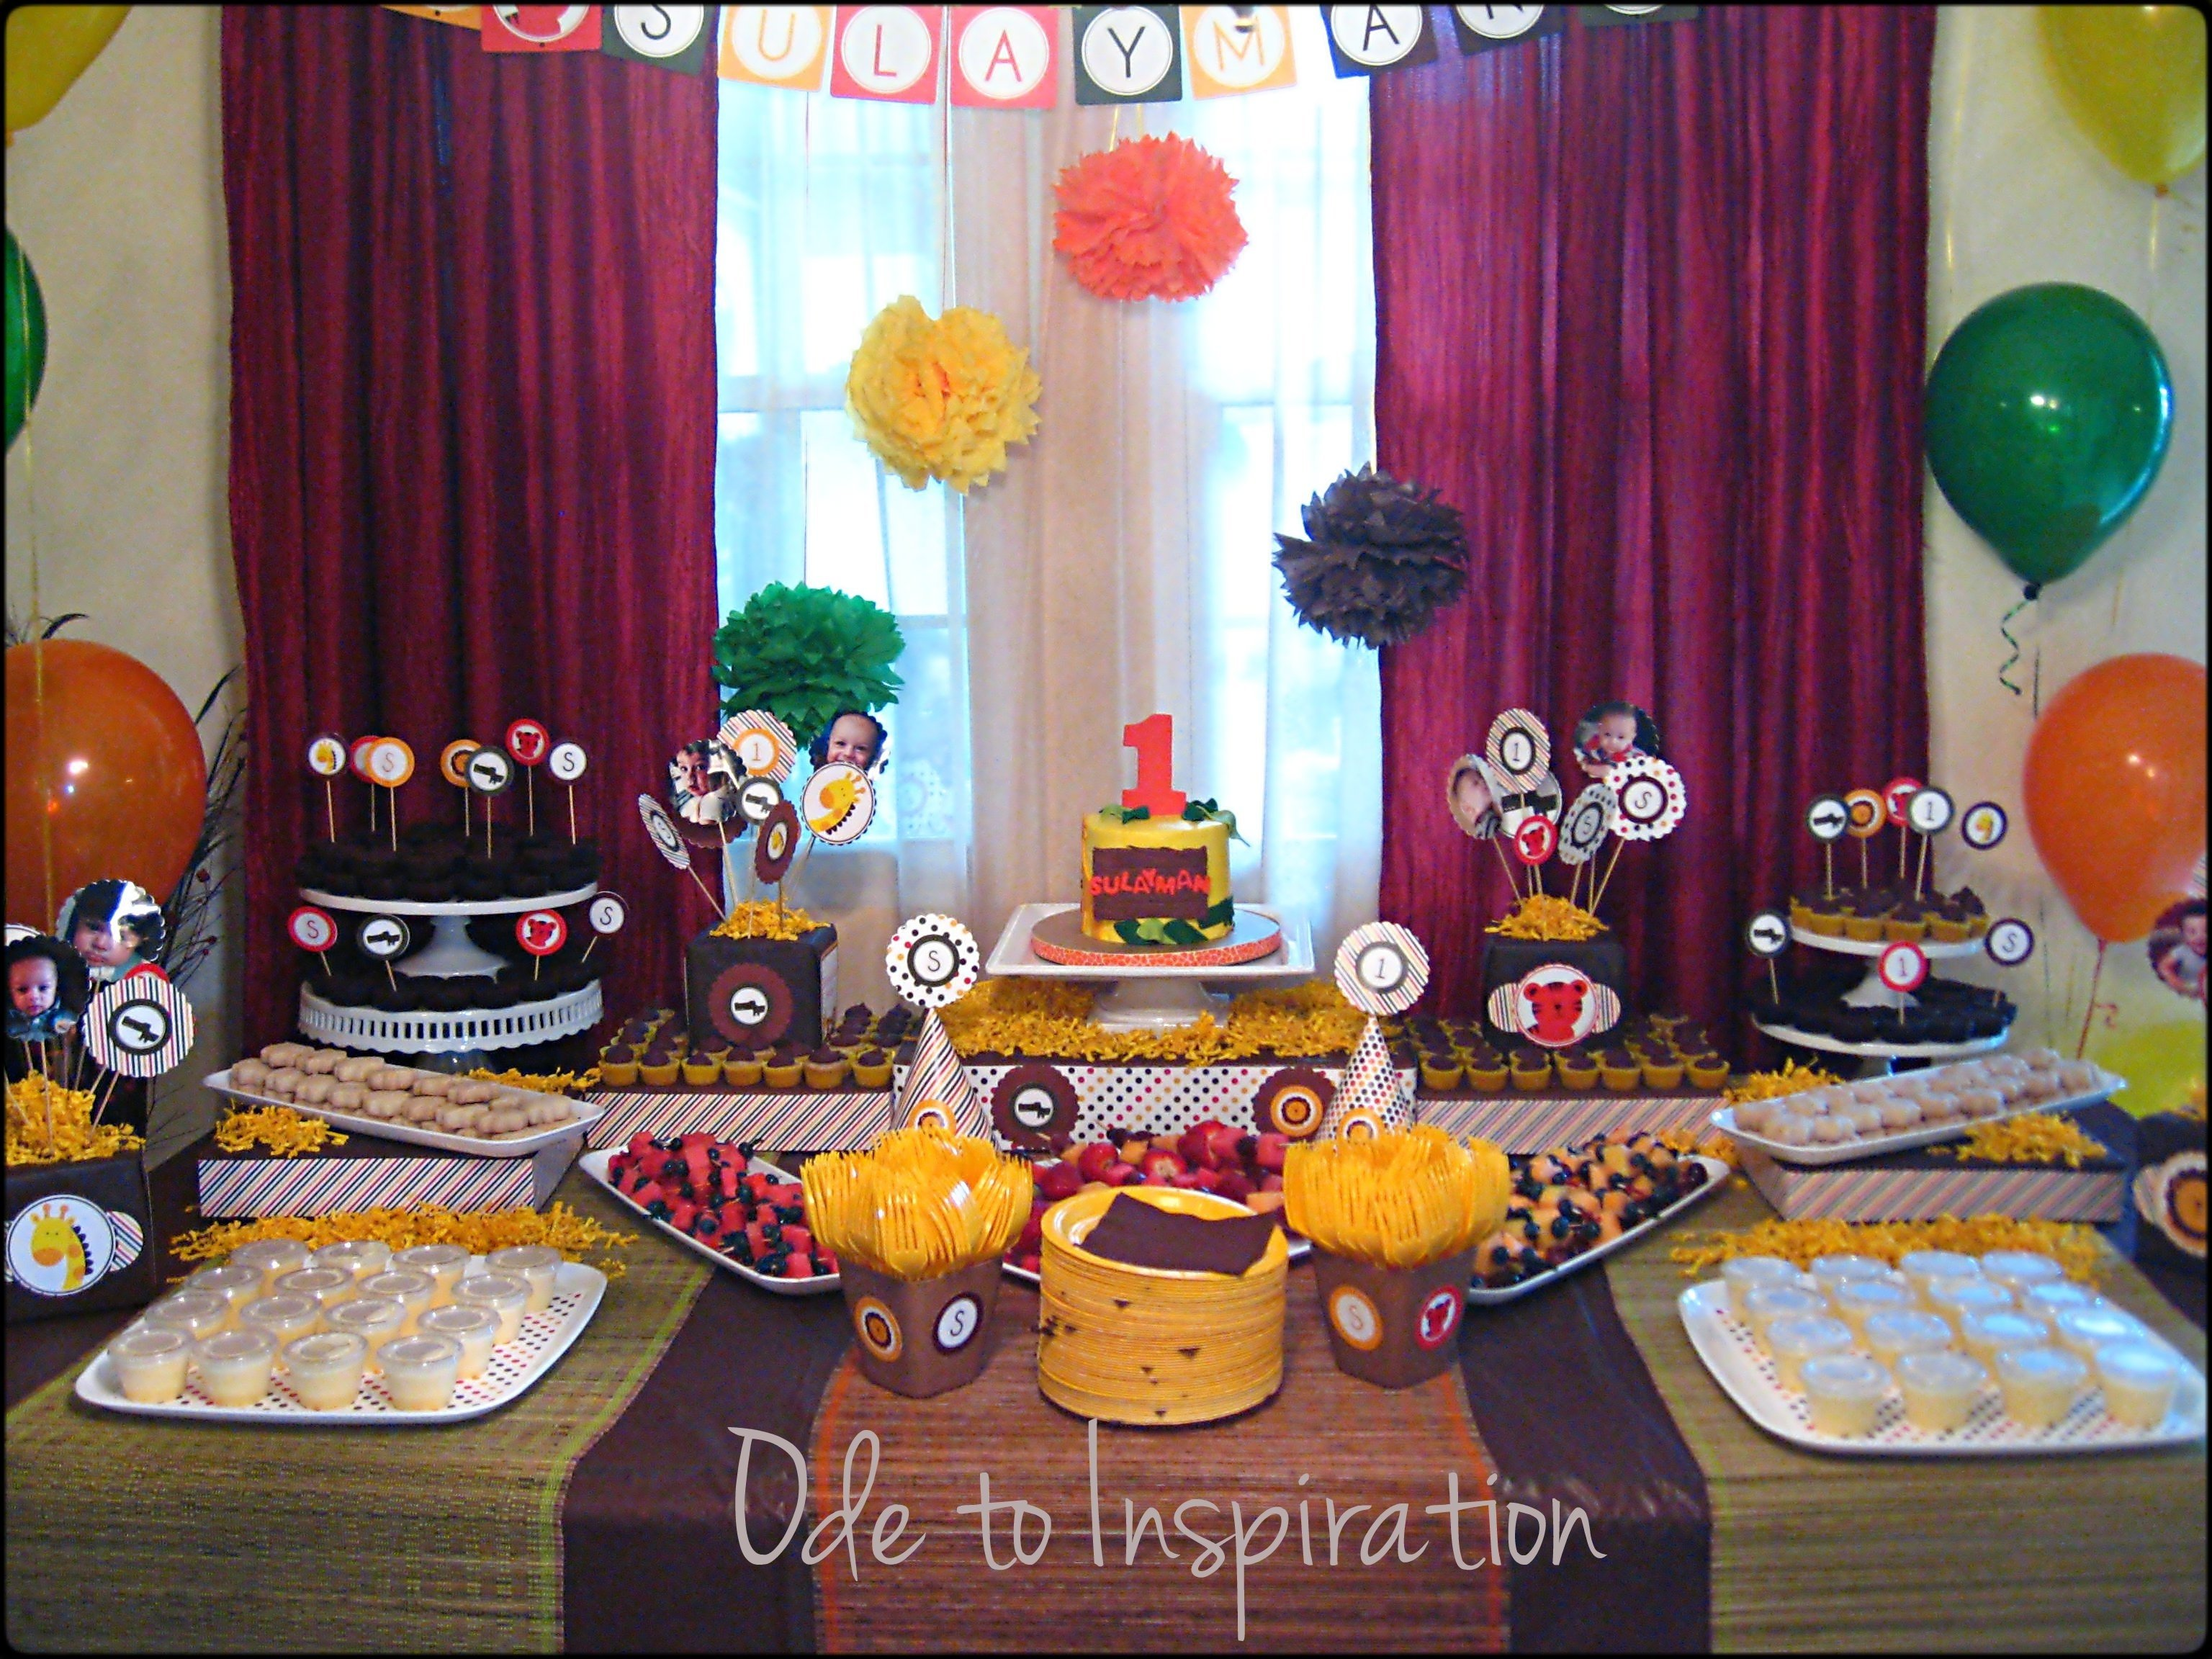 10 Pretty Birthday Party Decoration Ideas For Adults birthday party themes for adults ideas home design ideas 2021